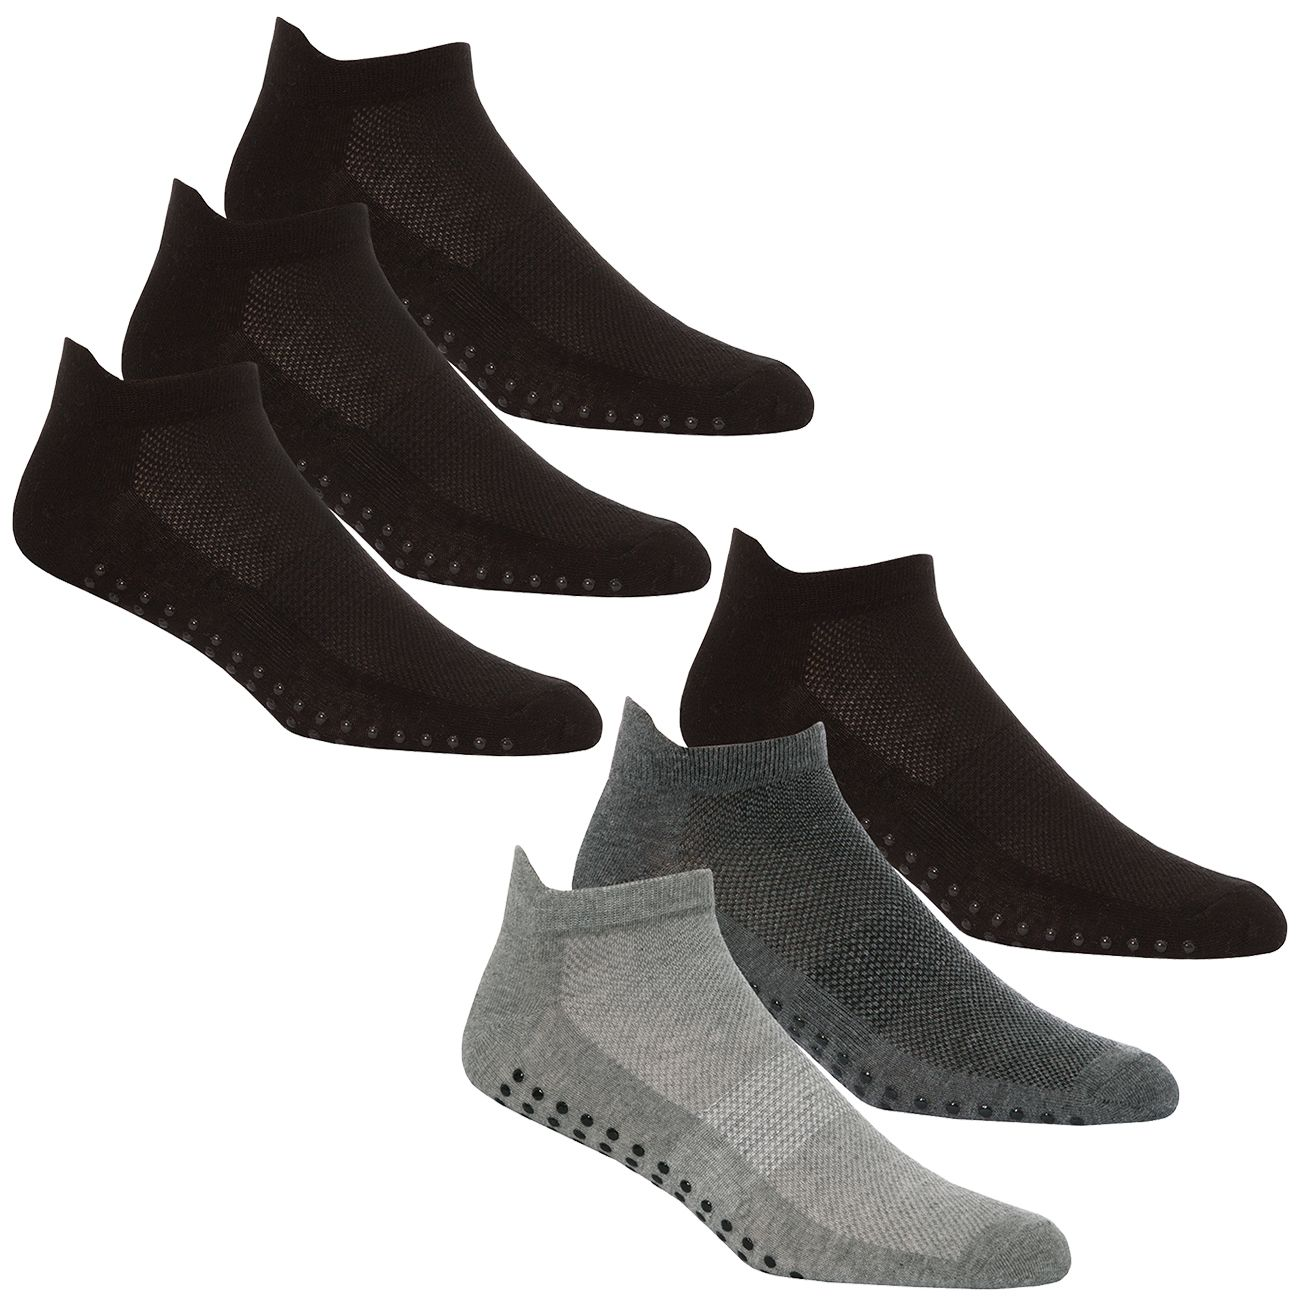 40B502, Mens 3 in a pack Sports Trainer Liner Socks £1.50.  12pks...